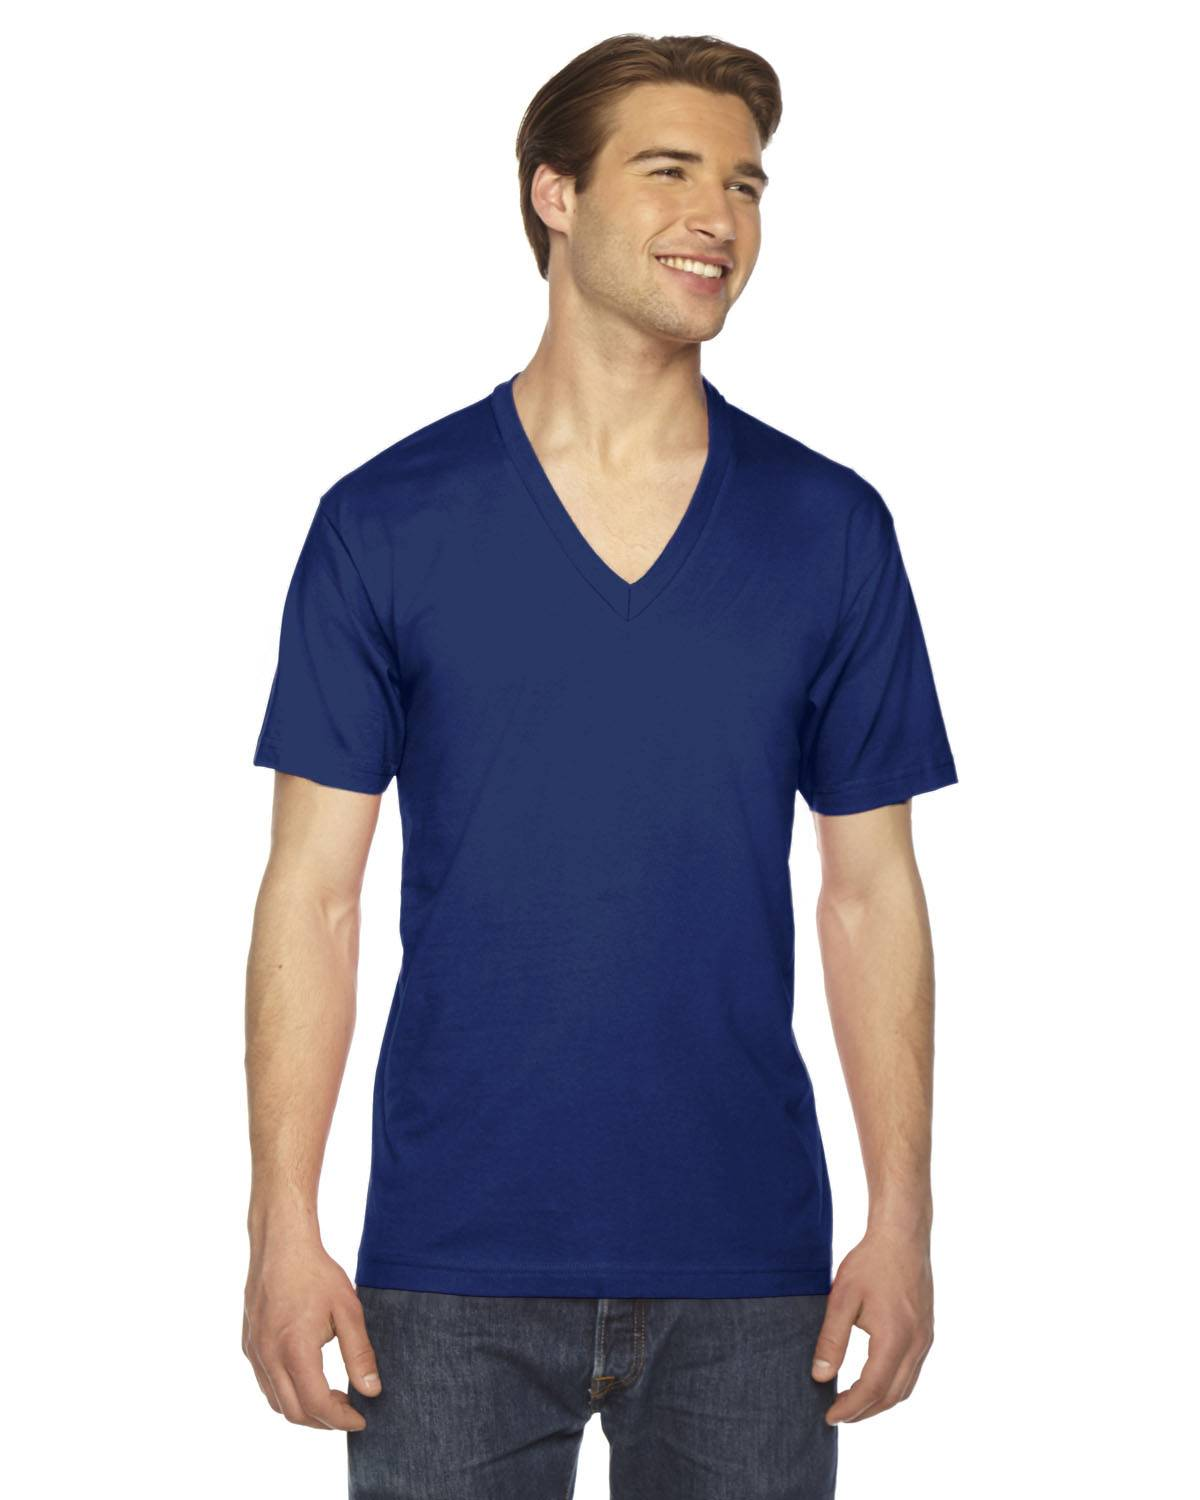 American Apparel Unisex Fine Jersey Short-Sleeve V-Neck T-Shirt | 2456W